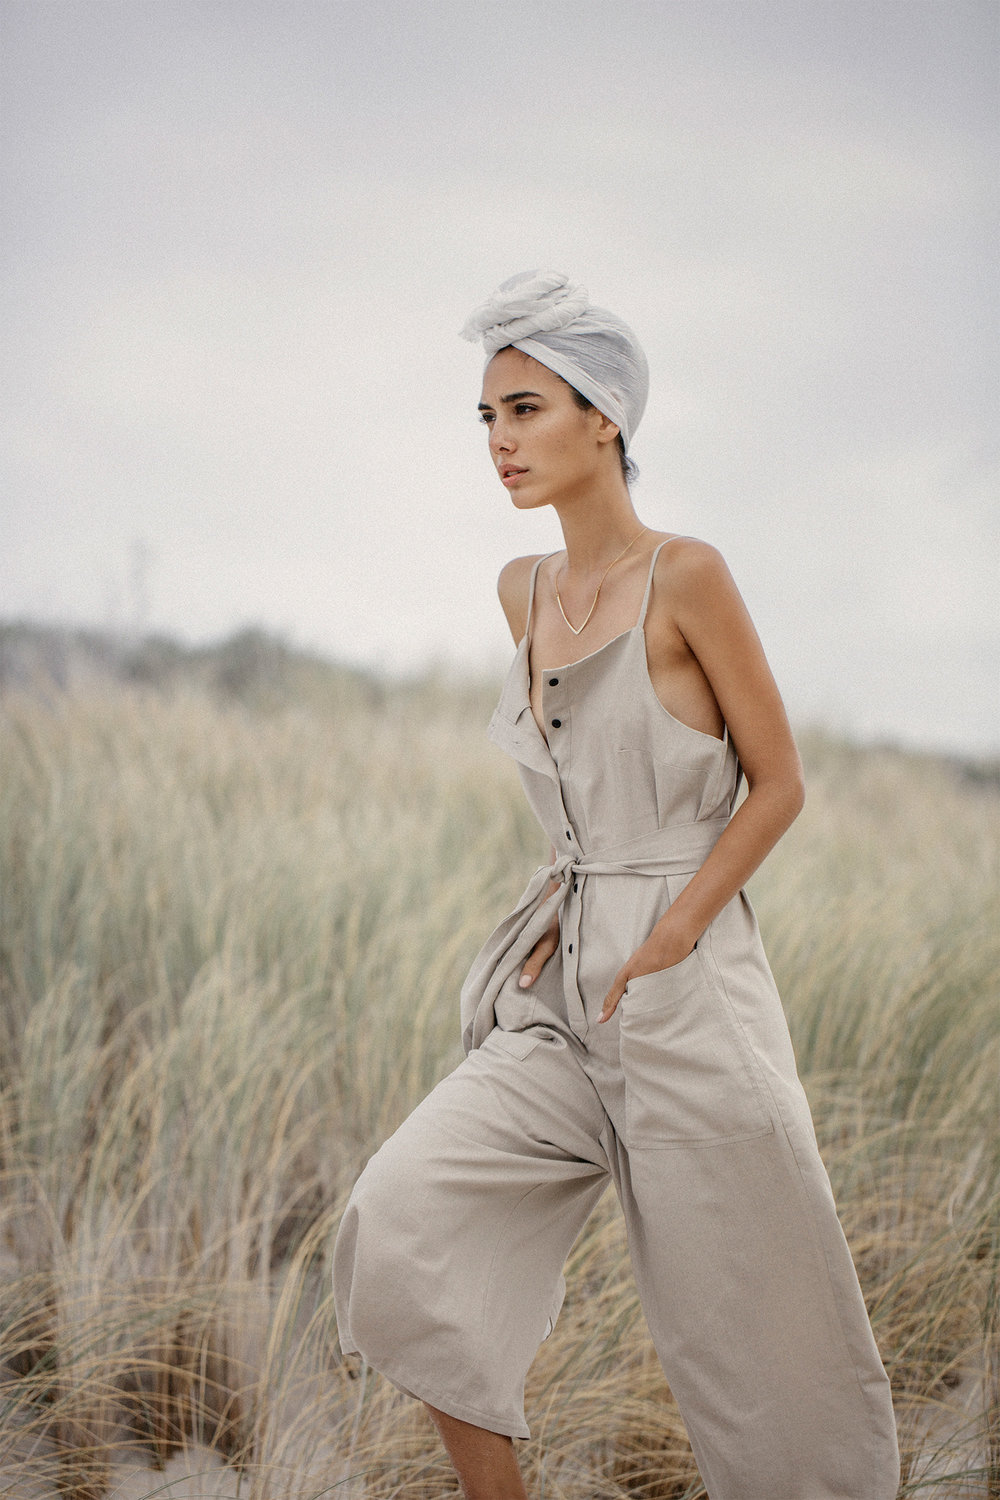 Beige jumpsuit, Selfi at Mungo & Jemima; necklace, Sarah Mulder Jewelry; head wrap, stylist's own